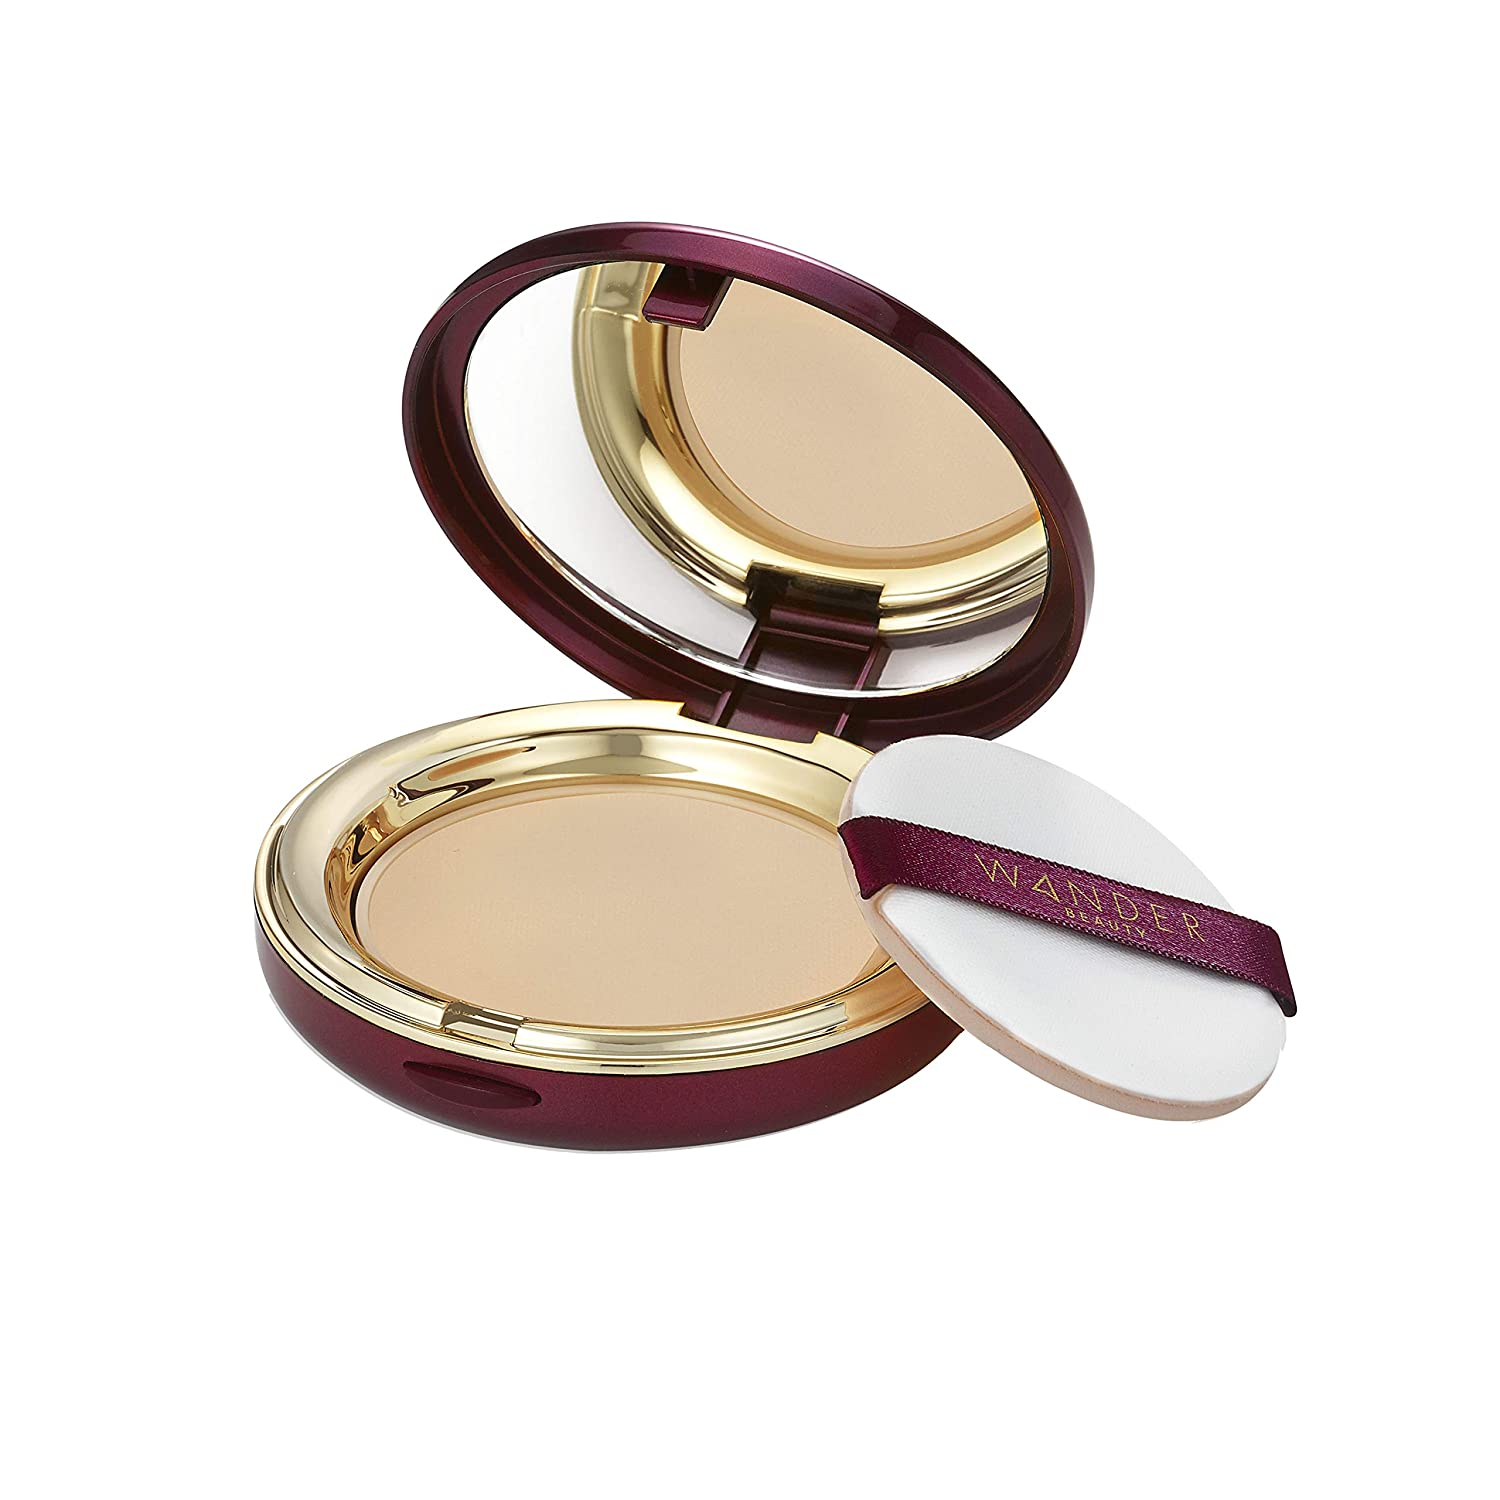 Wander Beauty Wanderlust Powder Foundation - Light Medium - Talc-free, our best-selling lightweight powder foundation covers everything, silky smooth, natural looking matte finish, sheer to buildable full coverage